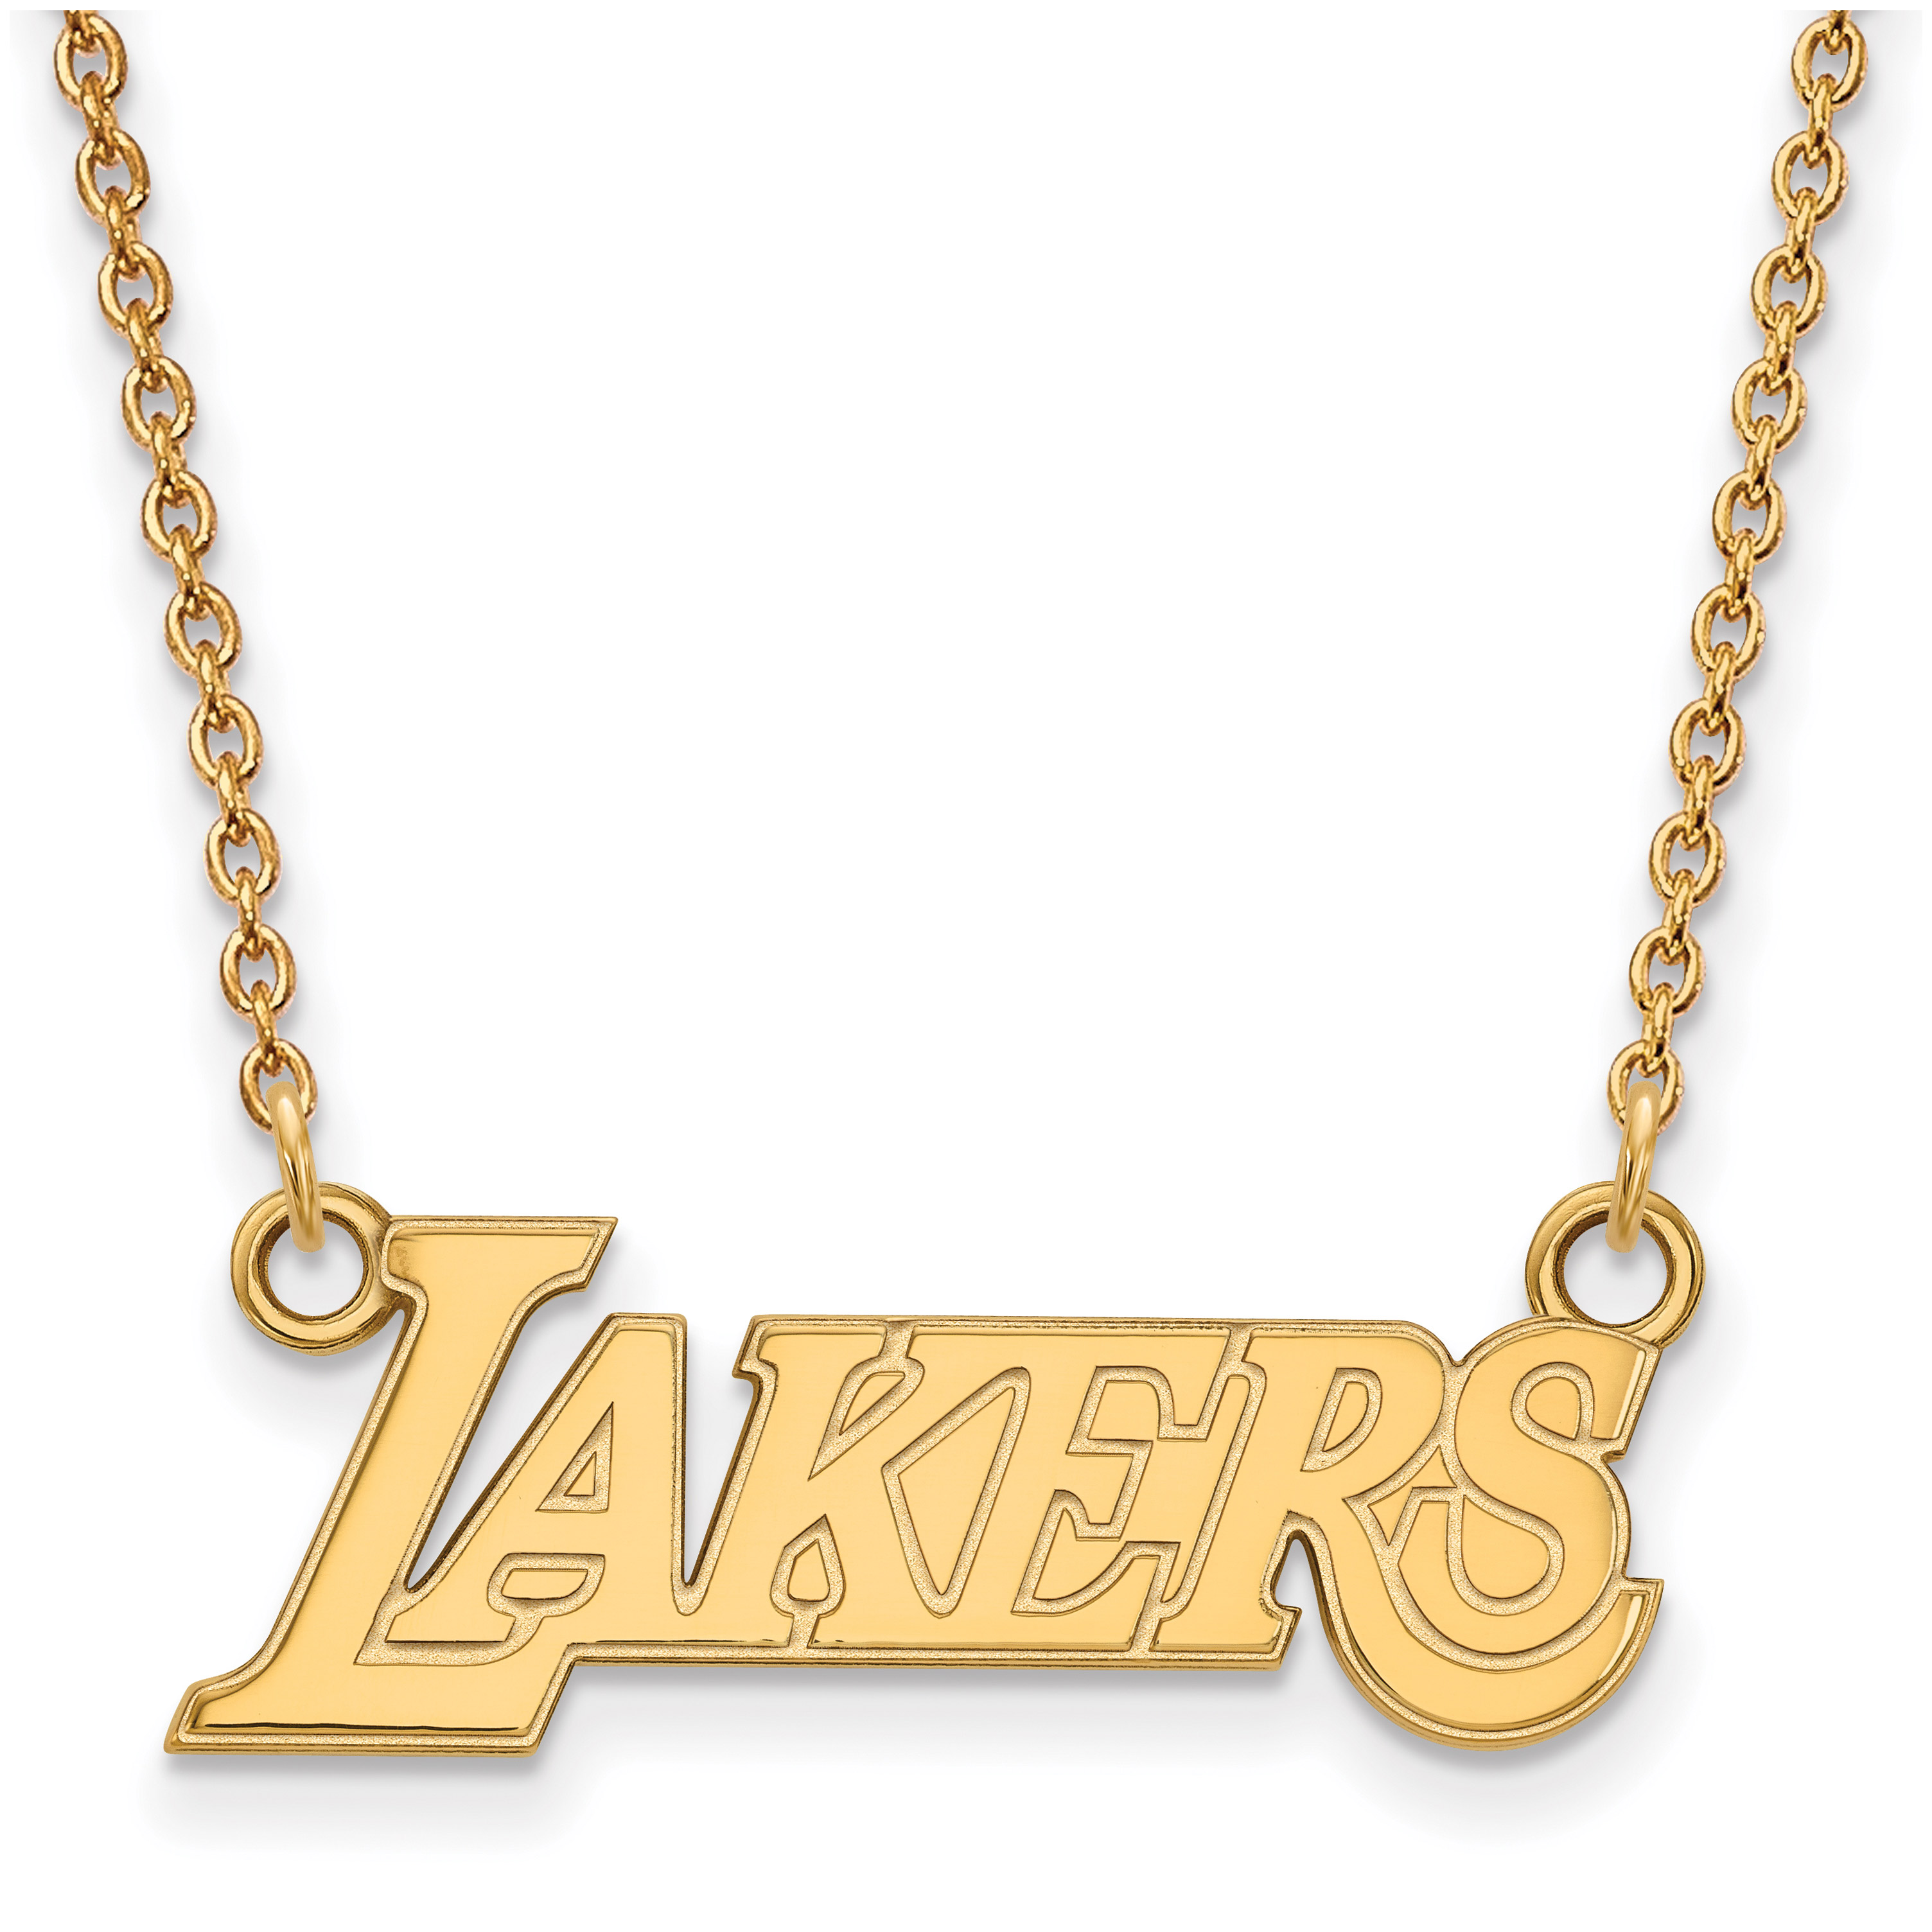 Los Angeles Lakers Women's Gold Plated Pendant Necklace - No Size